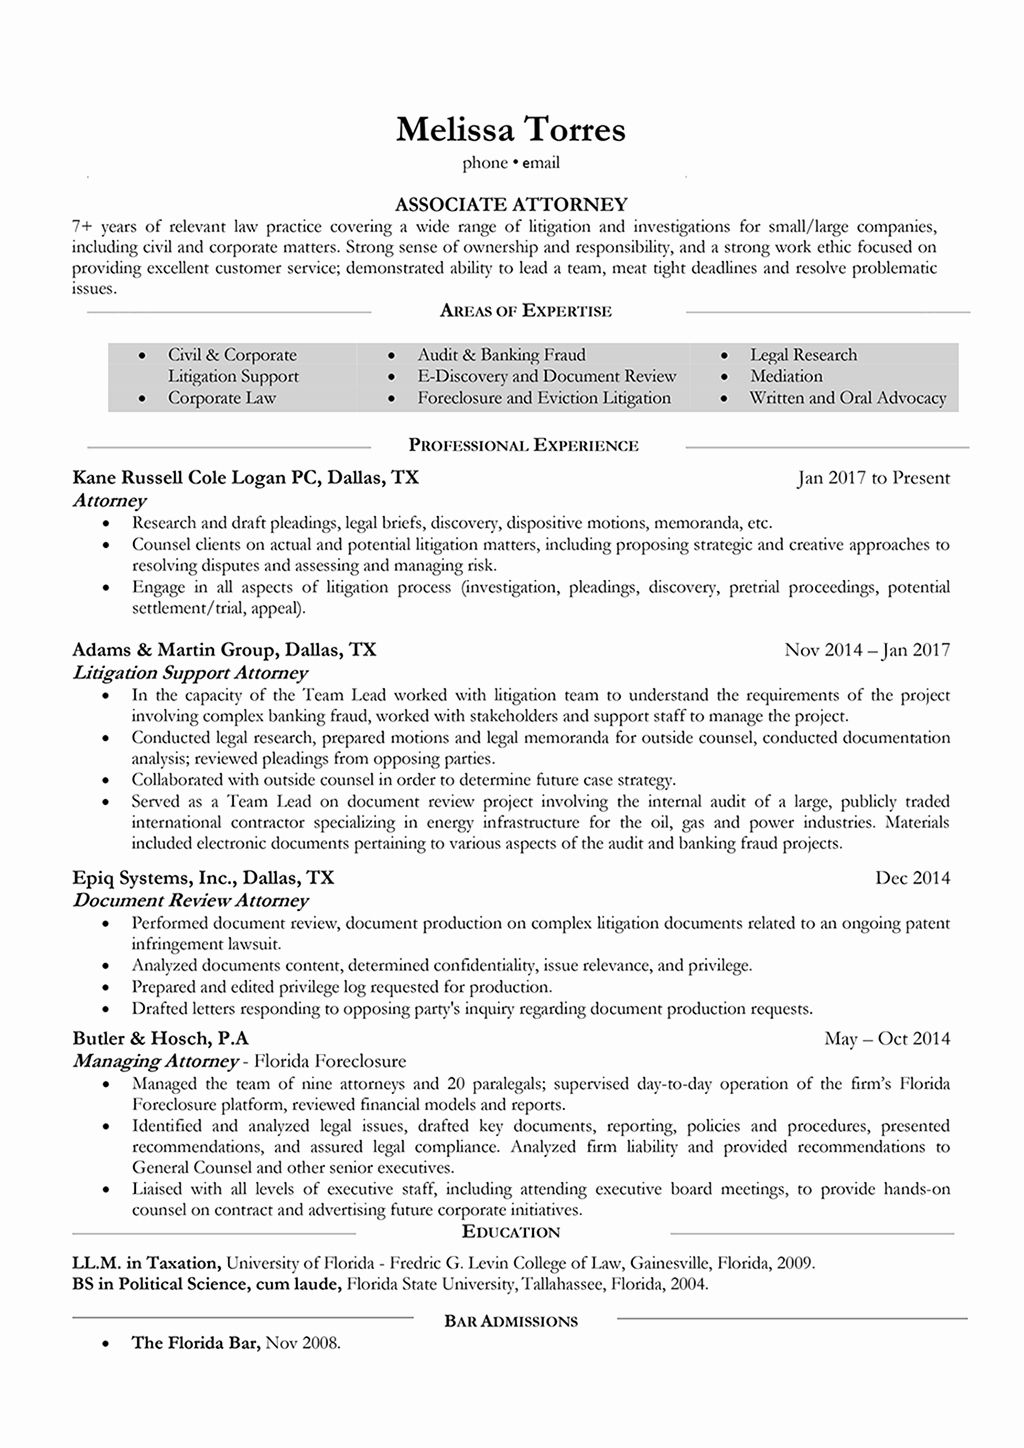 Legal Resume Template Word Elegant Resume Template Law Resume Examples Nousway Freettorney